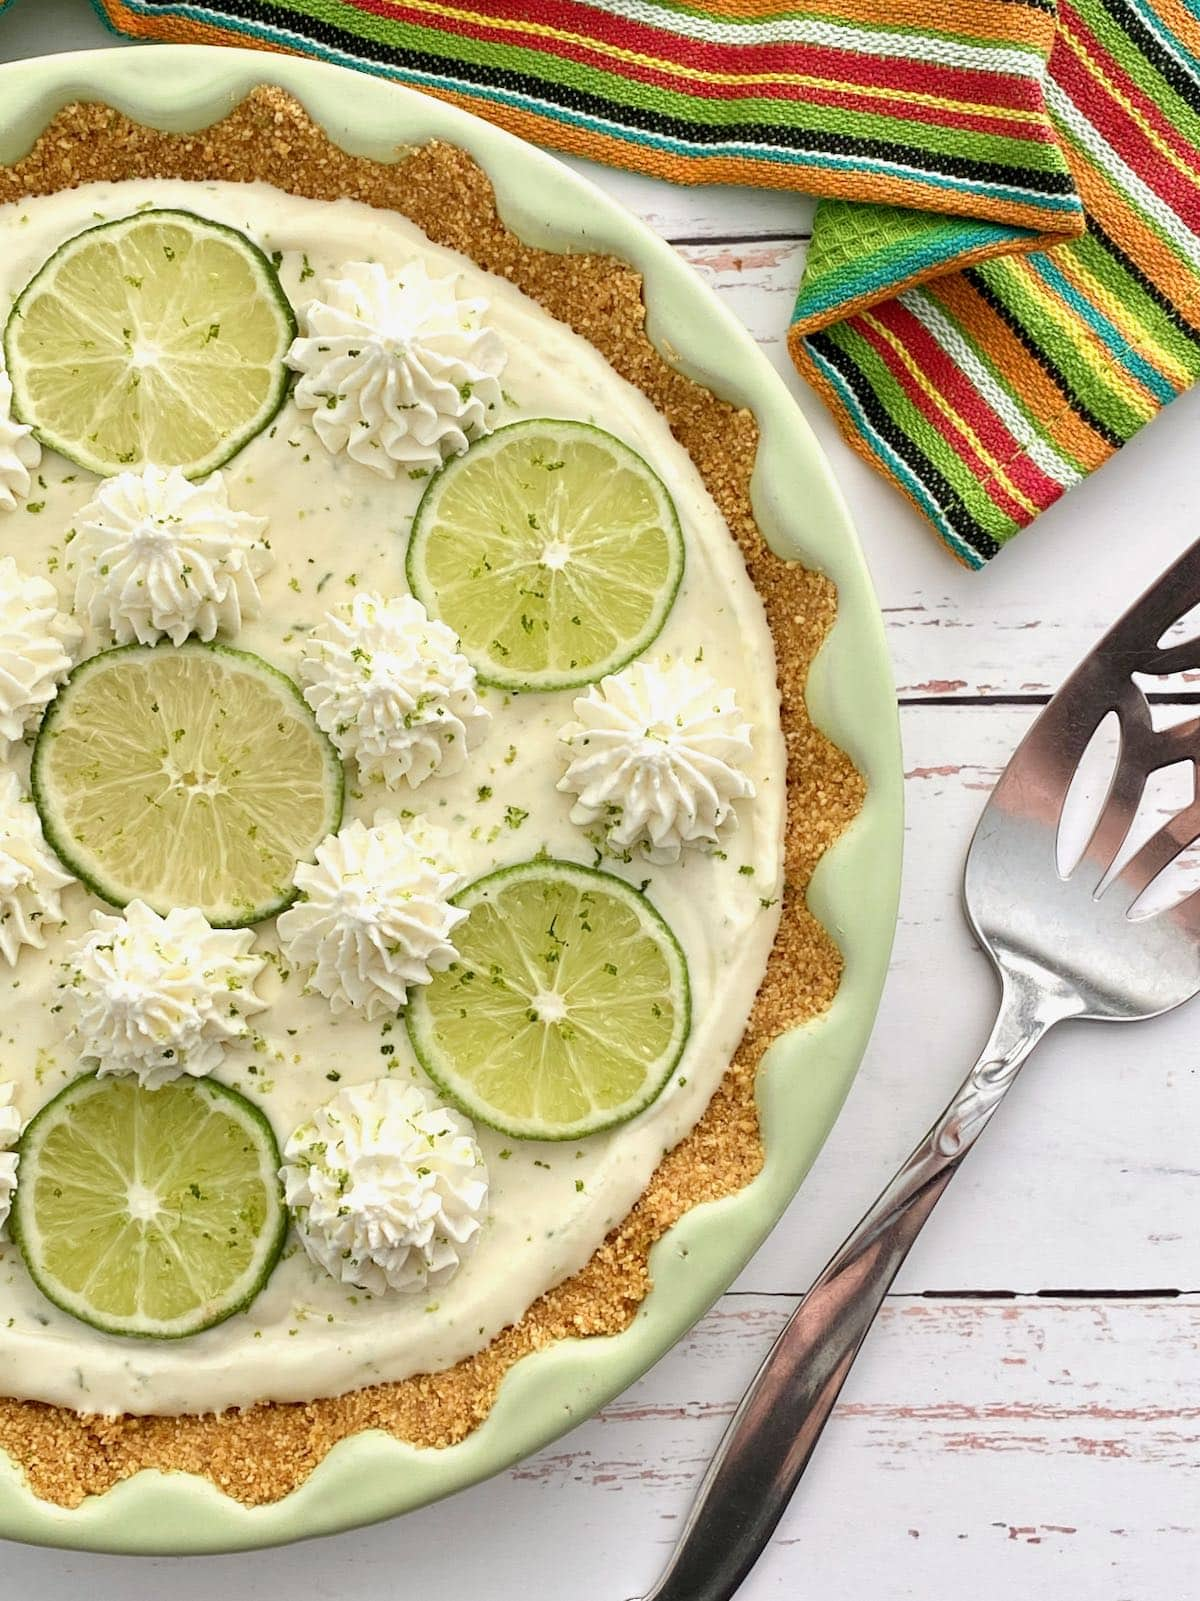 side view of key lime pie with server beside it.